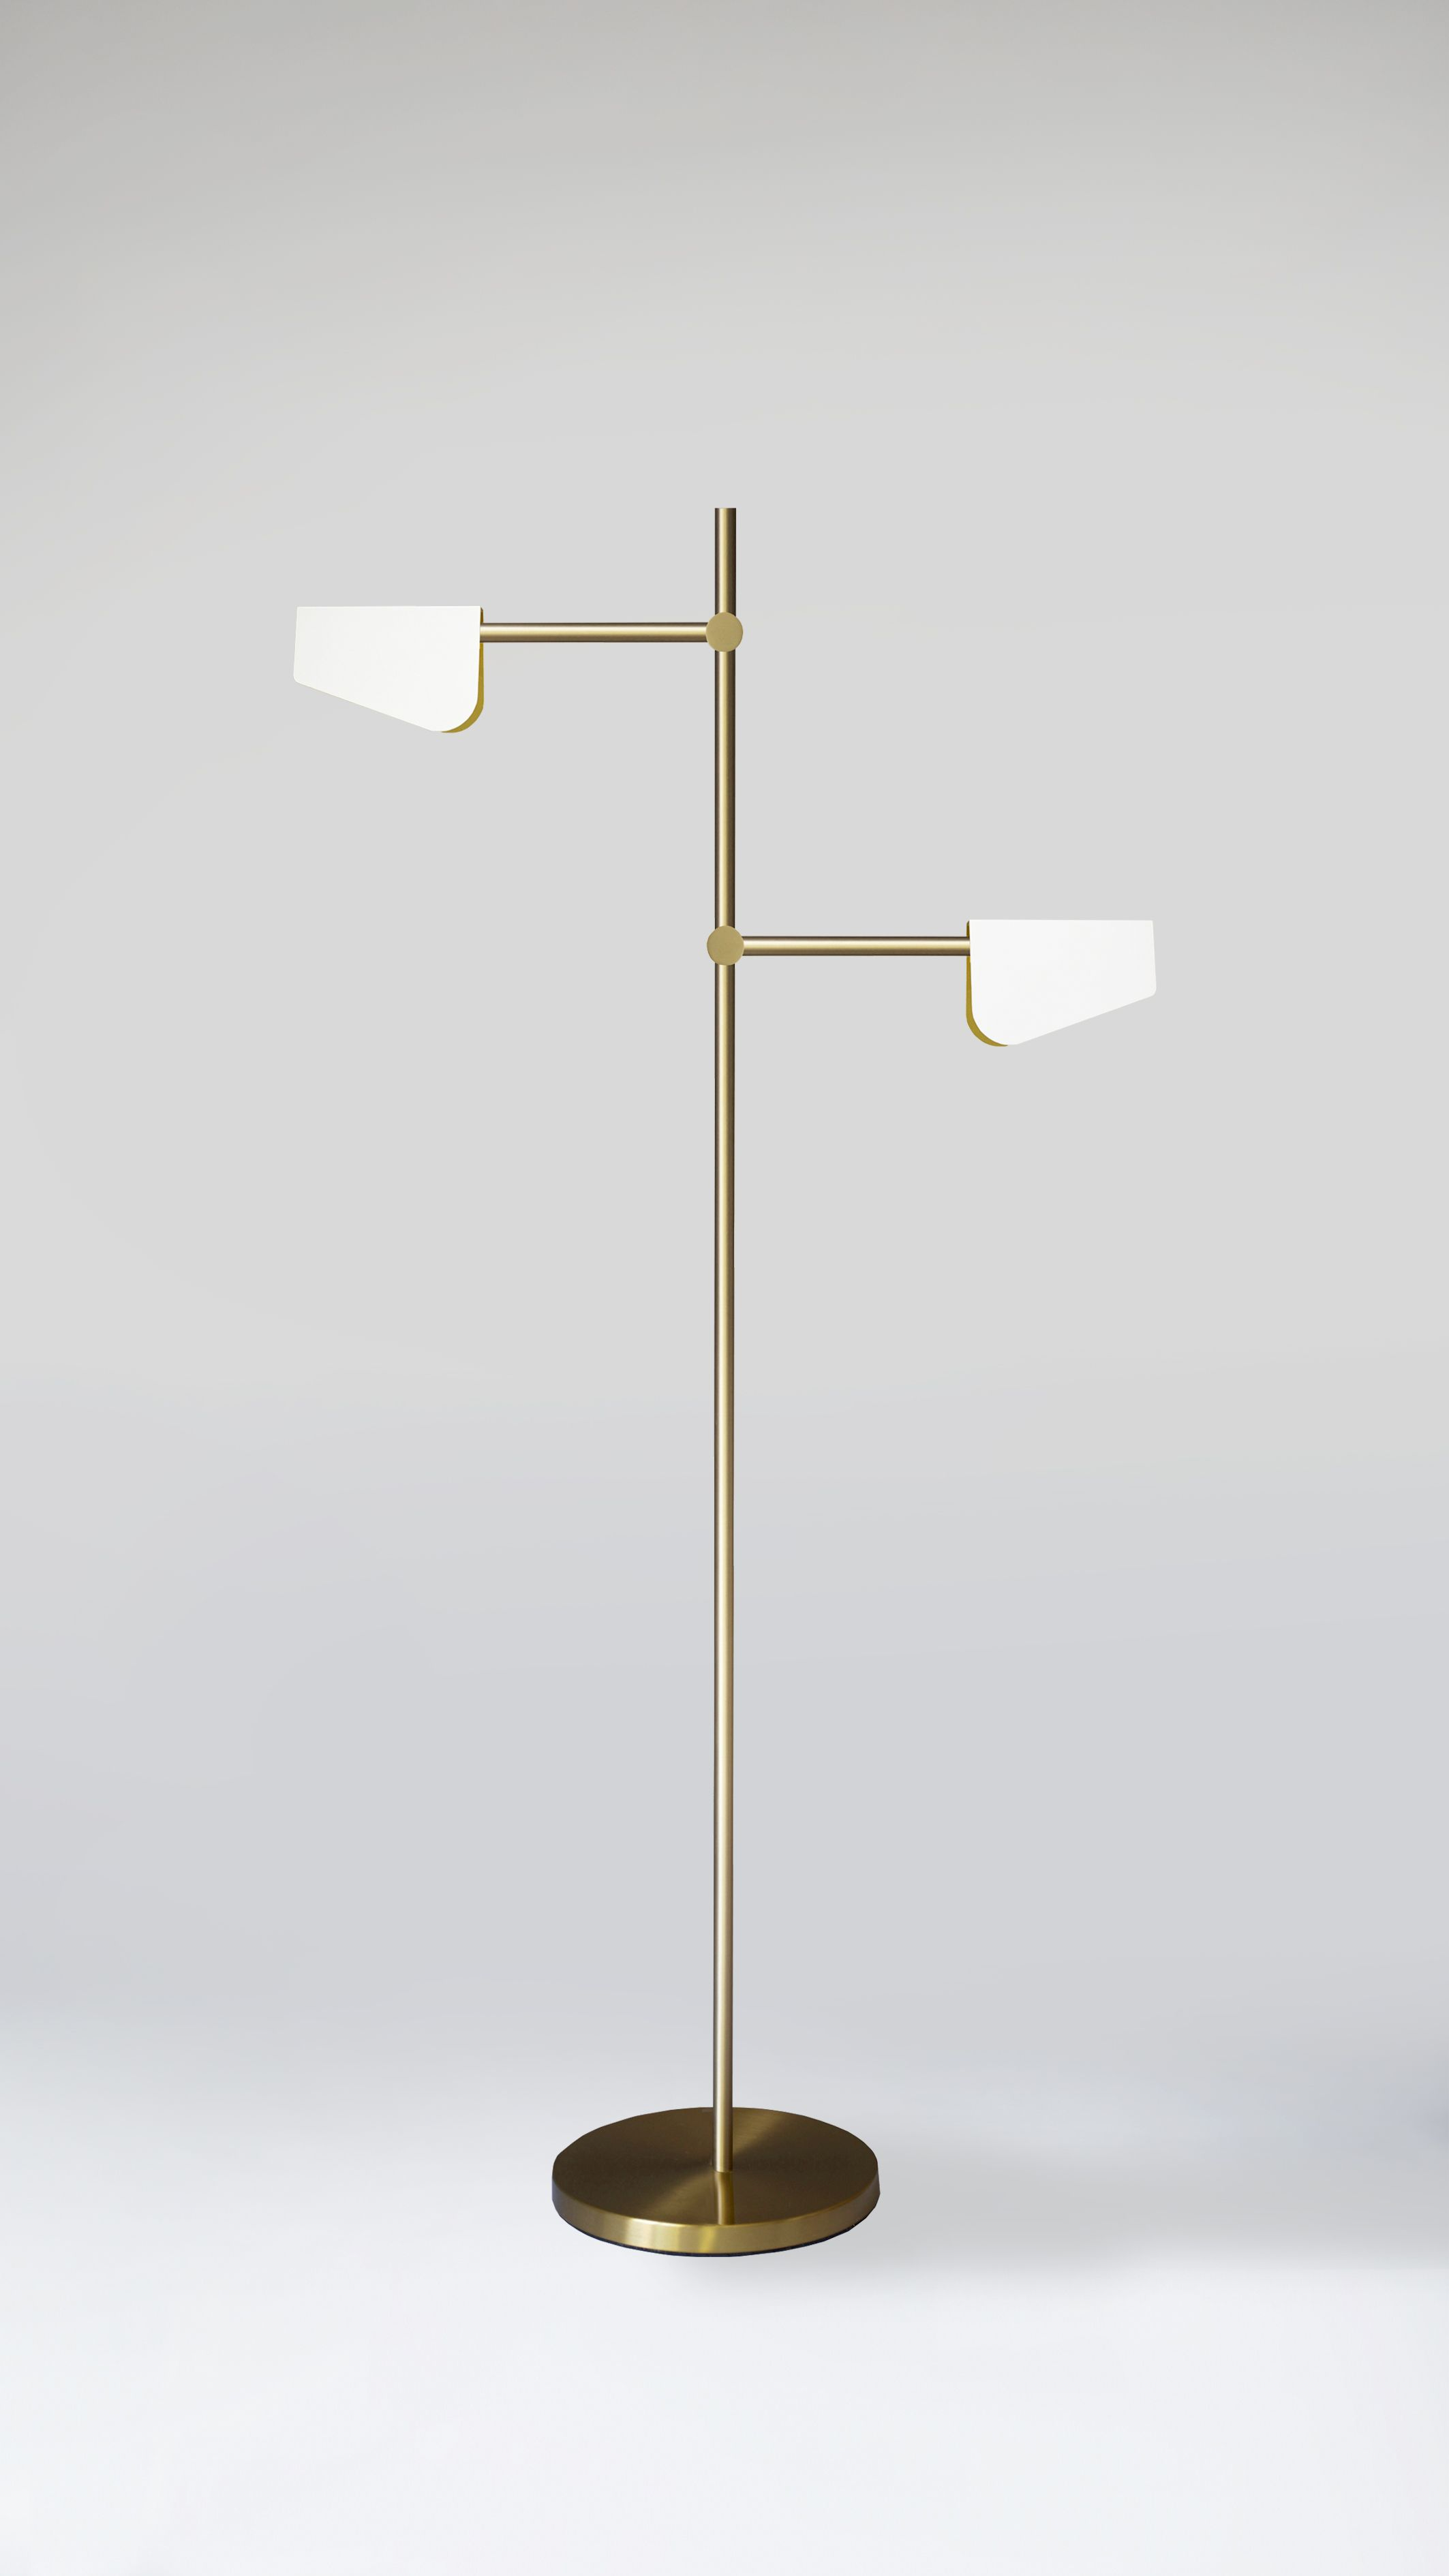 INTERSECTION II Floor Lamp. A minimal, twoarm floor